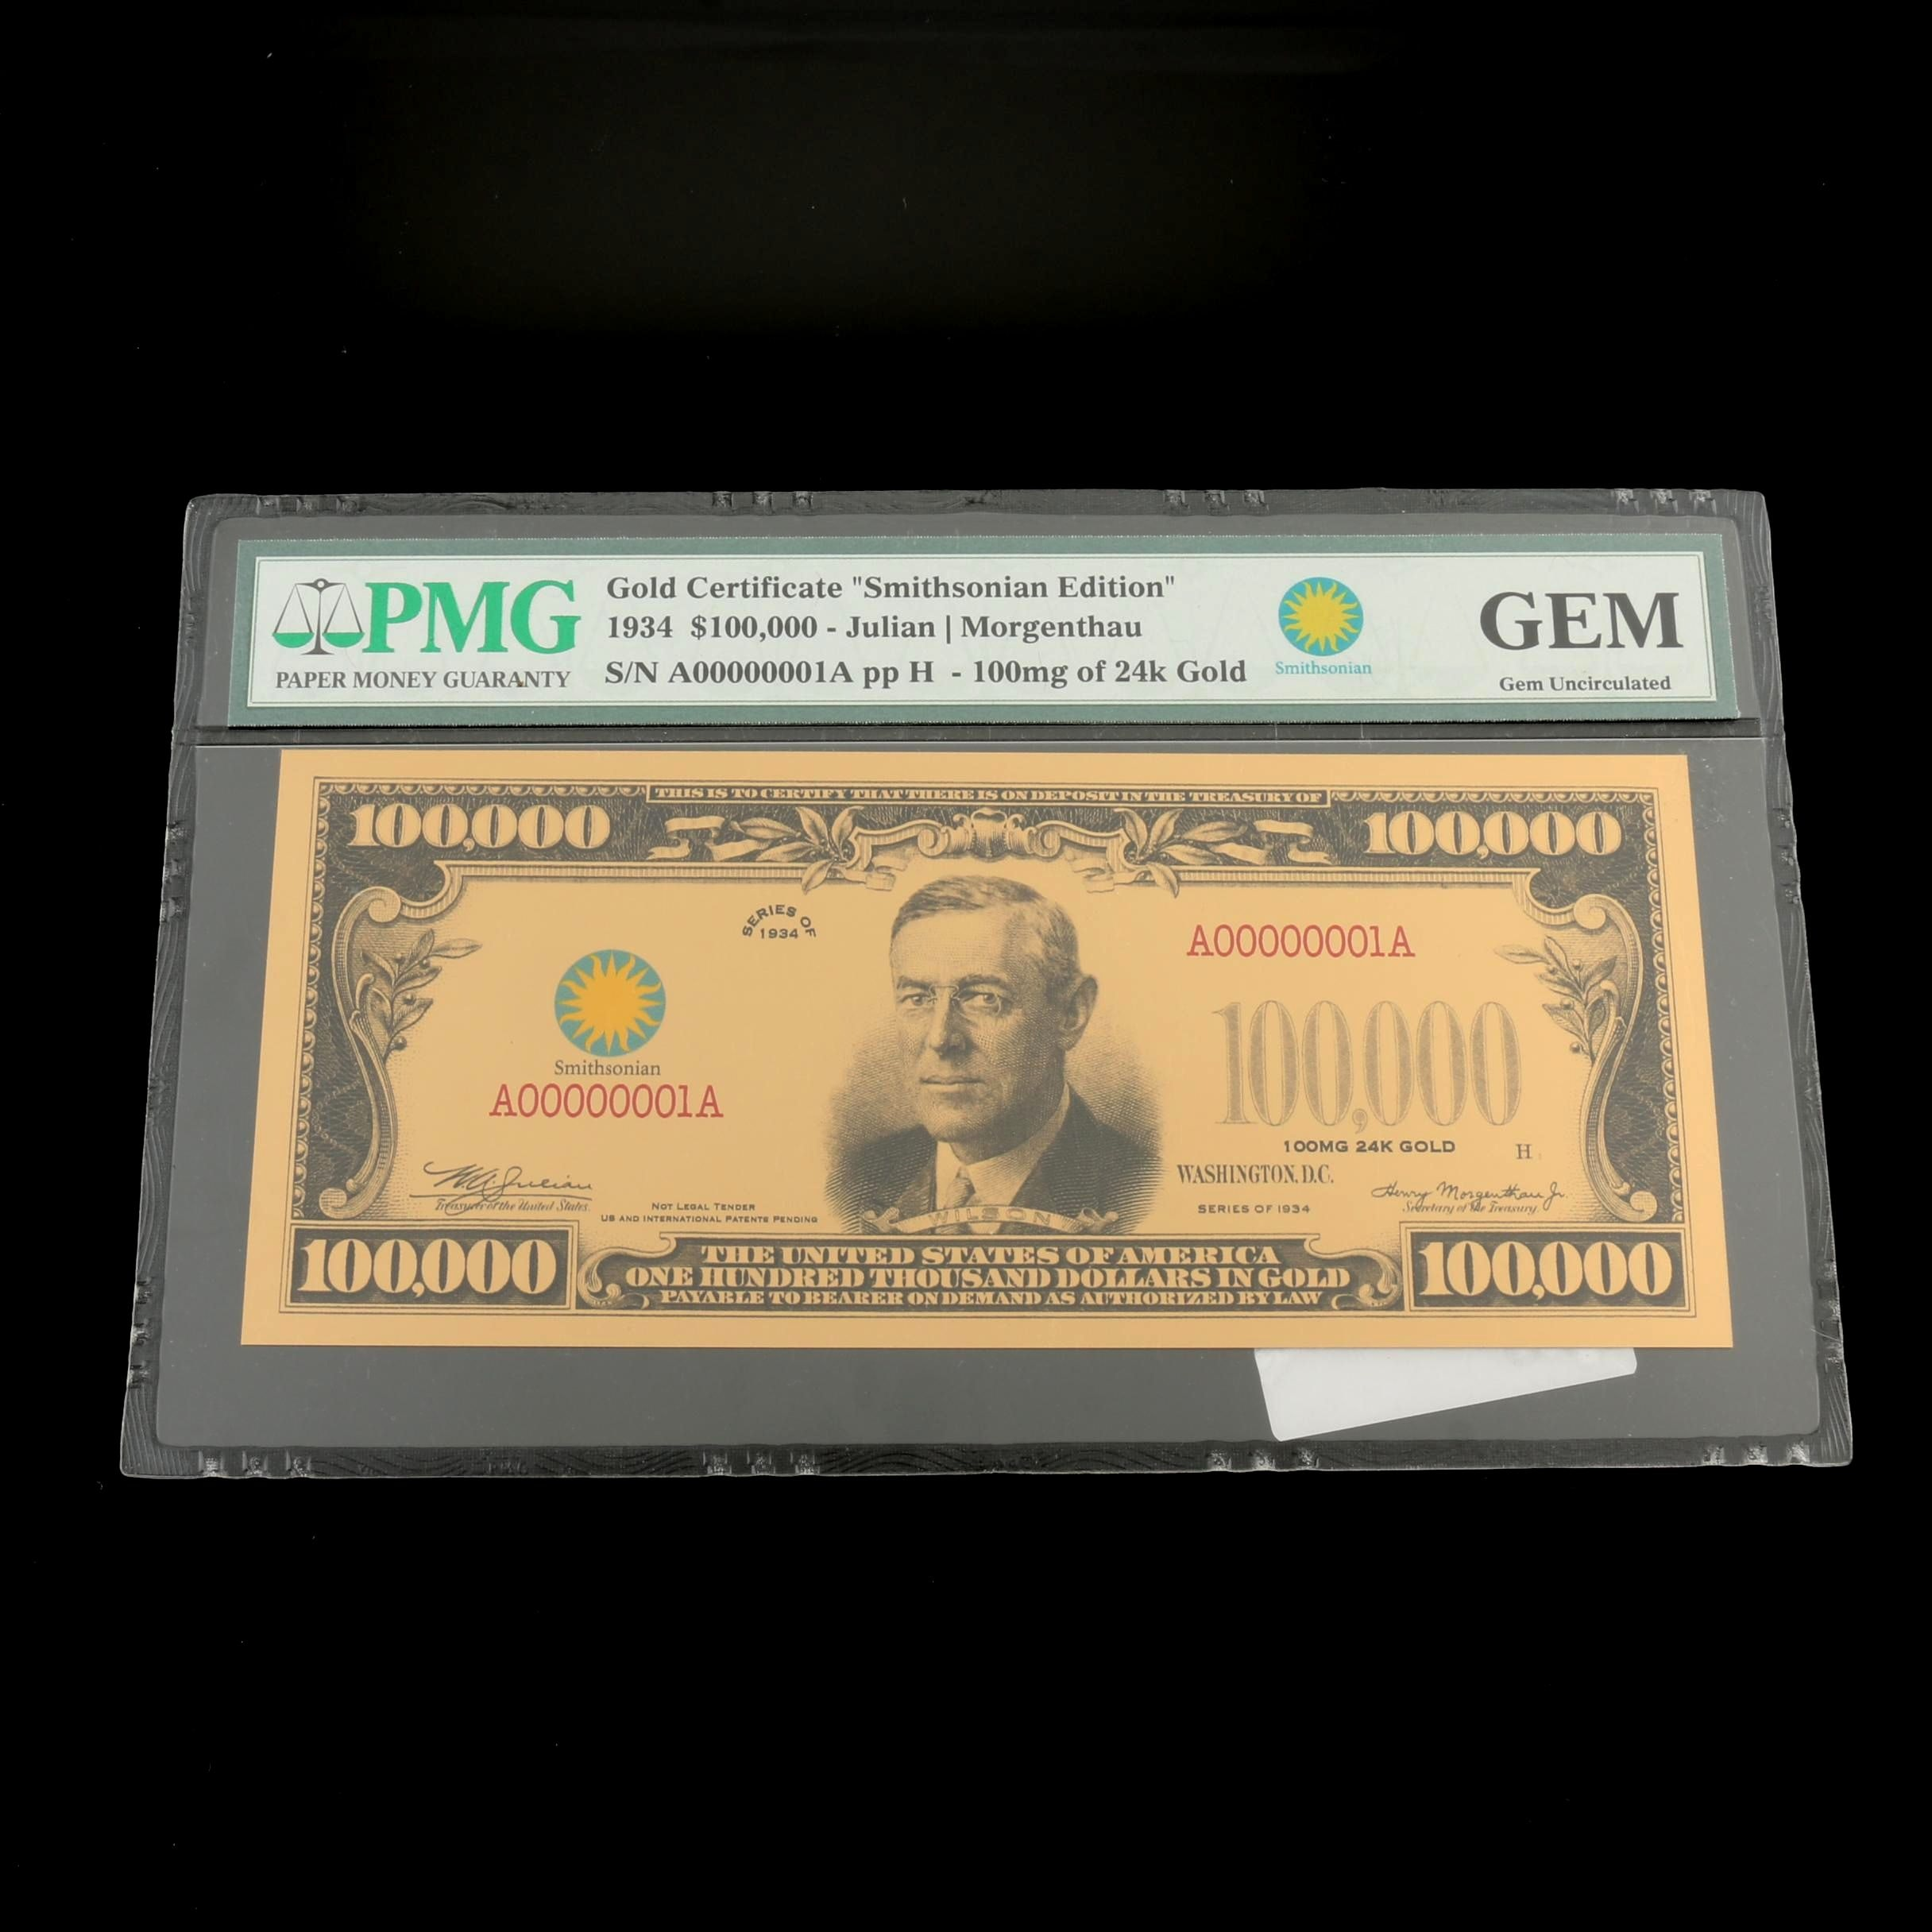 PMG Graded Gem Uncirculated $100,000 Gold Certificate 1934 Smithsonian Edition